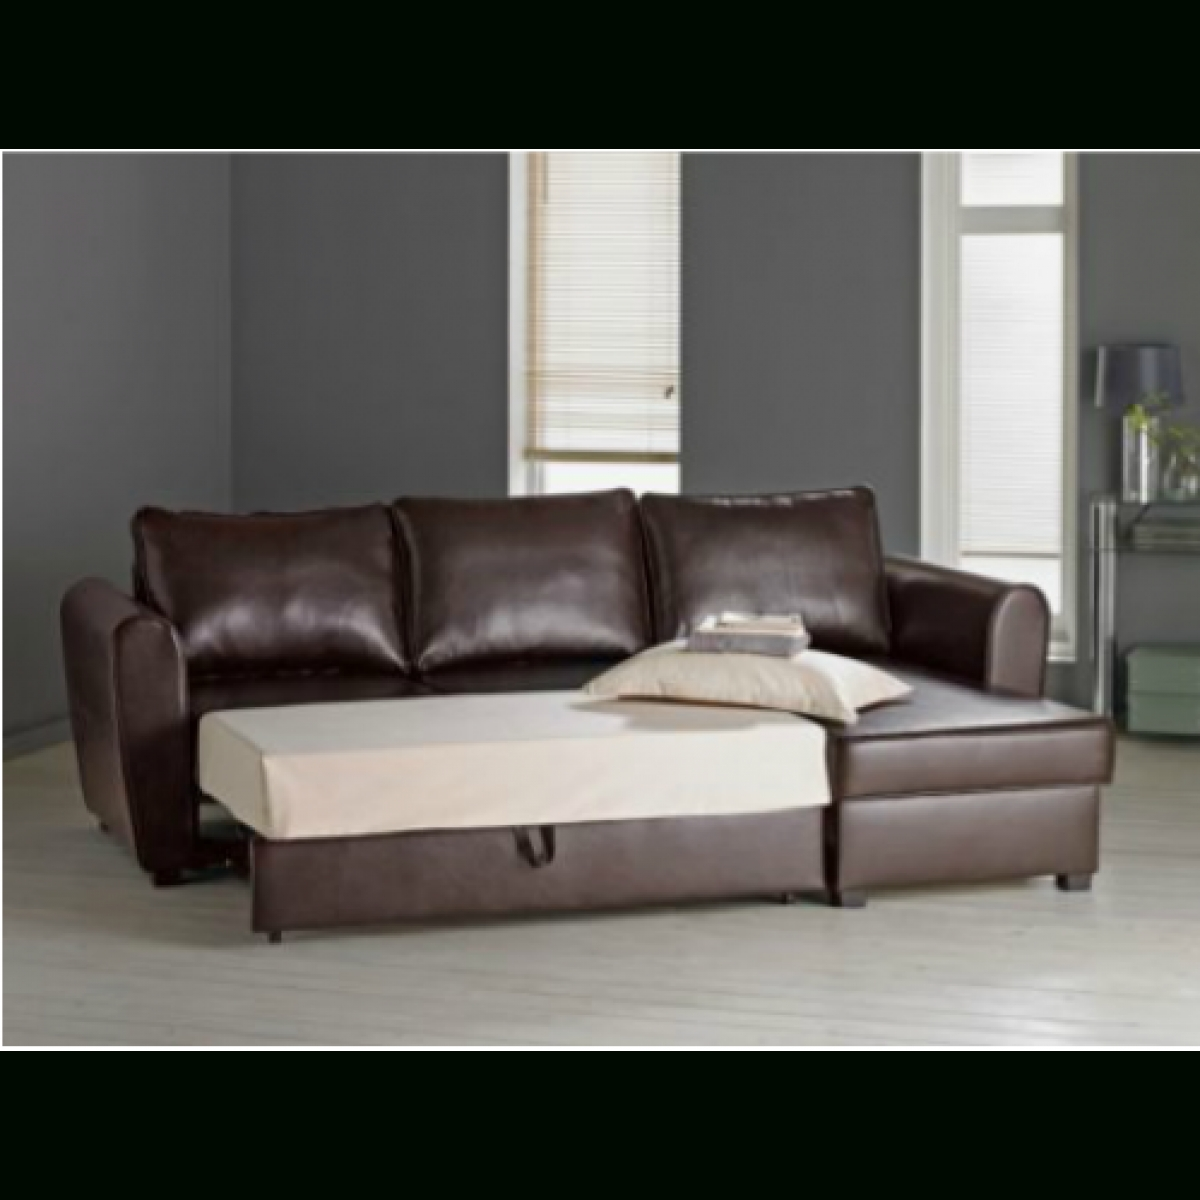 New Siena Fabric Corner Sofa Bed With Storage - Charcoal pertaining to Leather Corner Sofa Bed (Image 25 of 30)